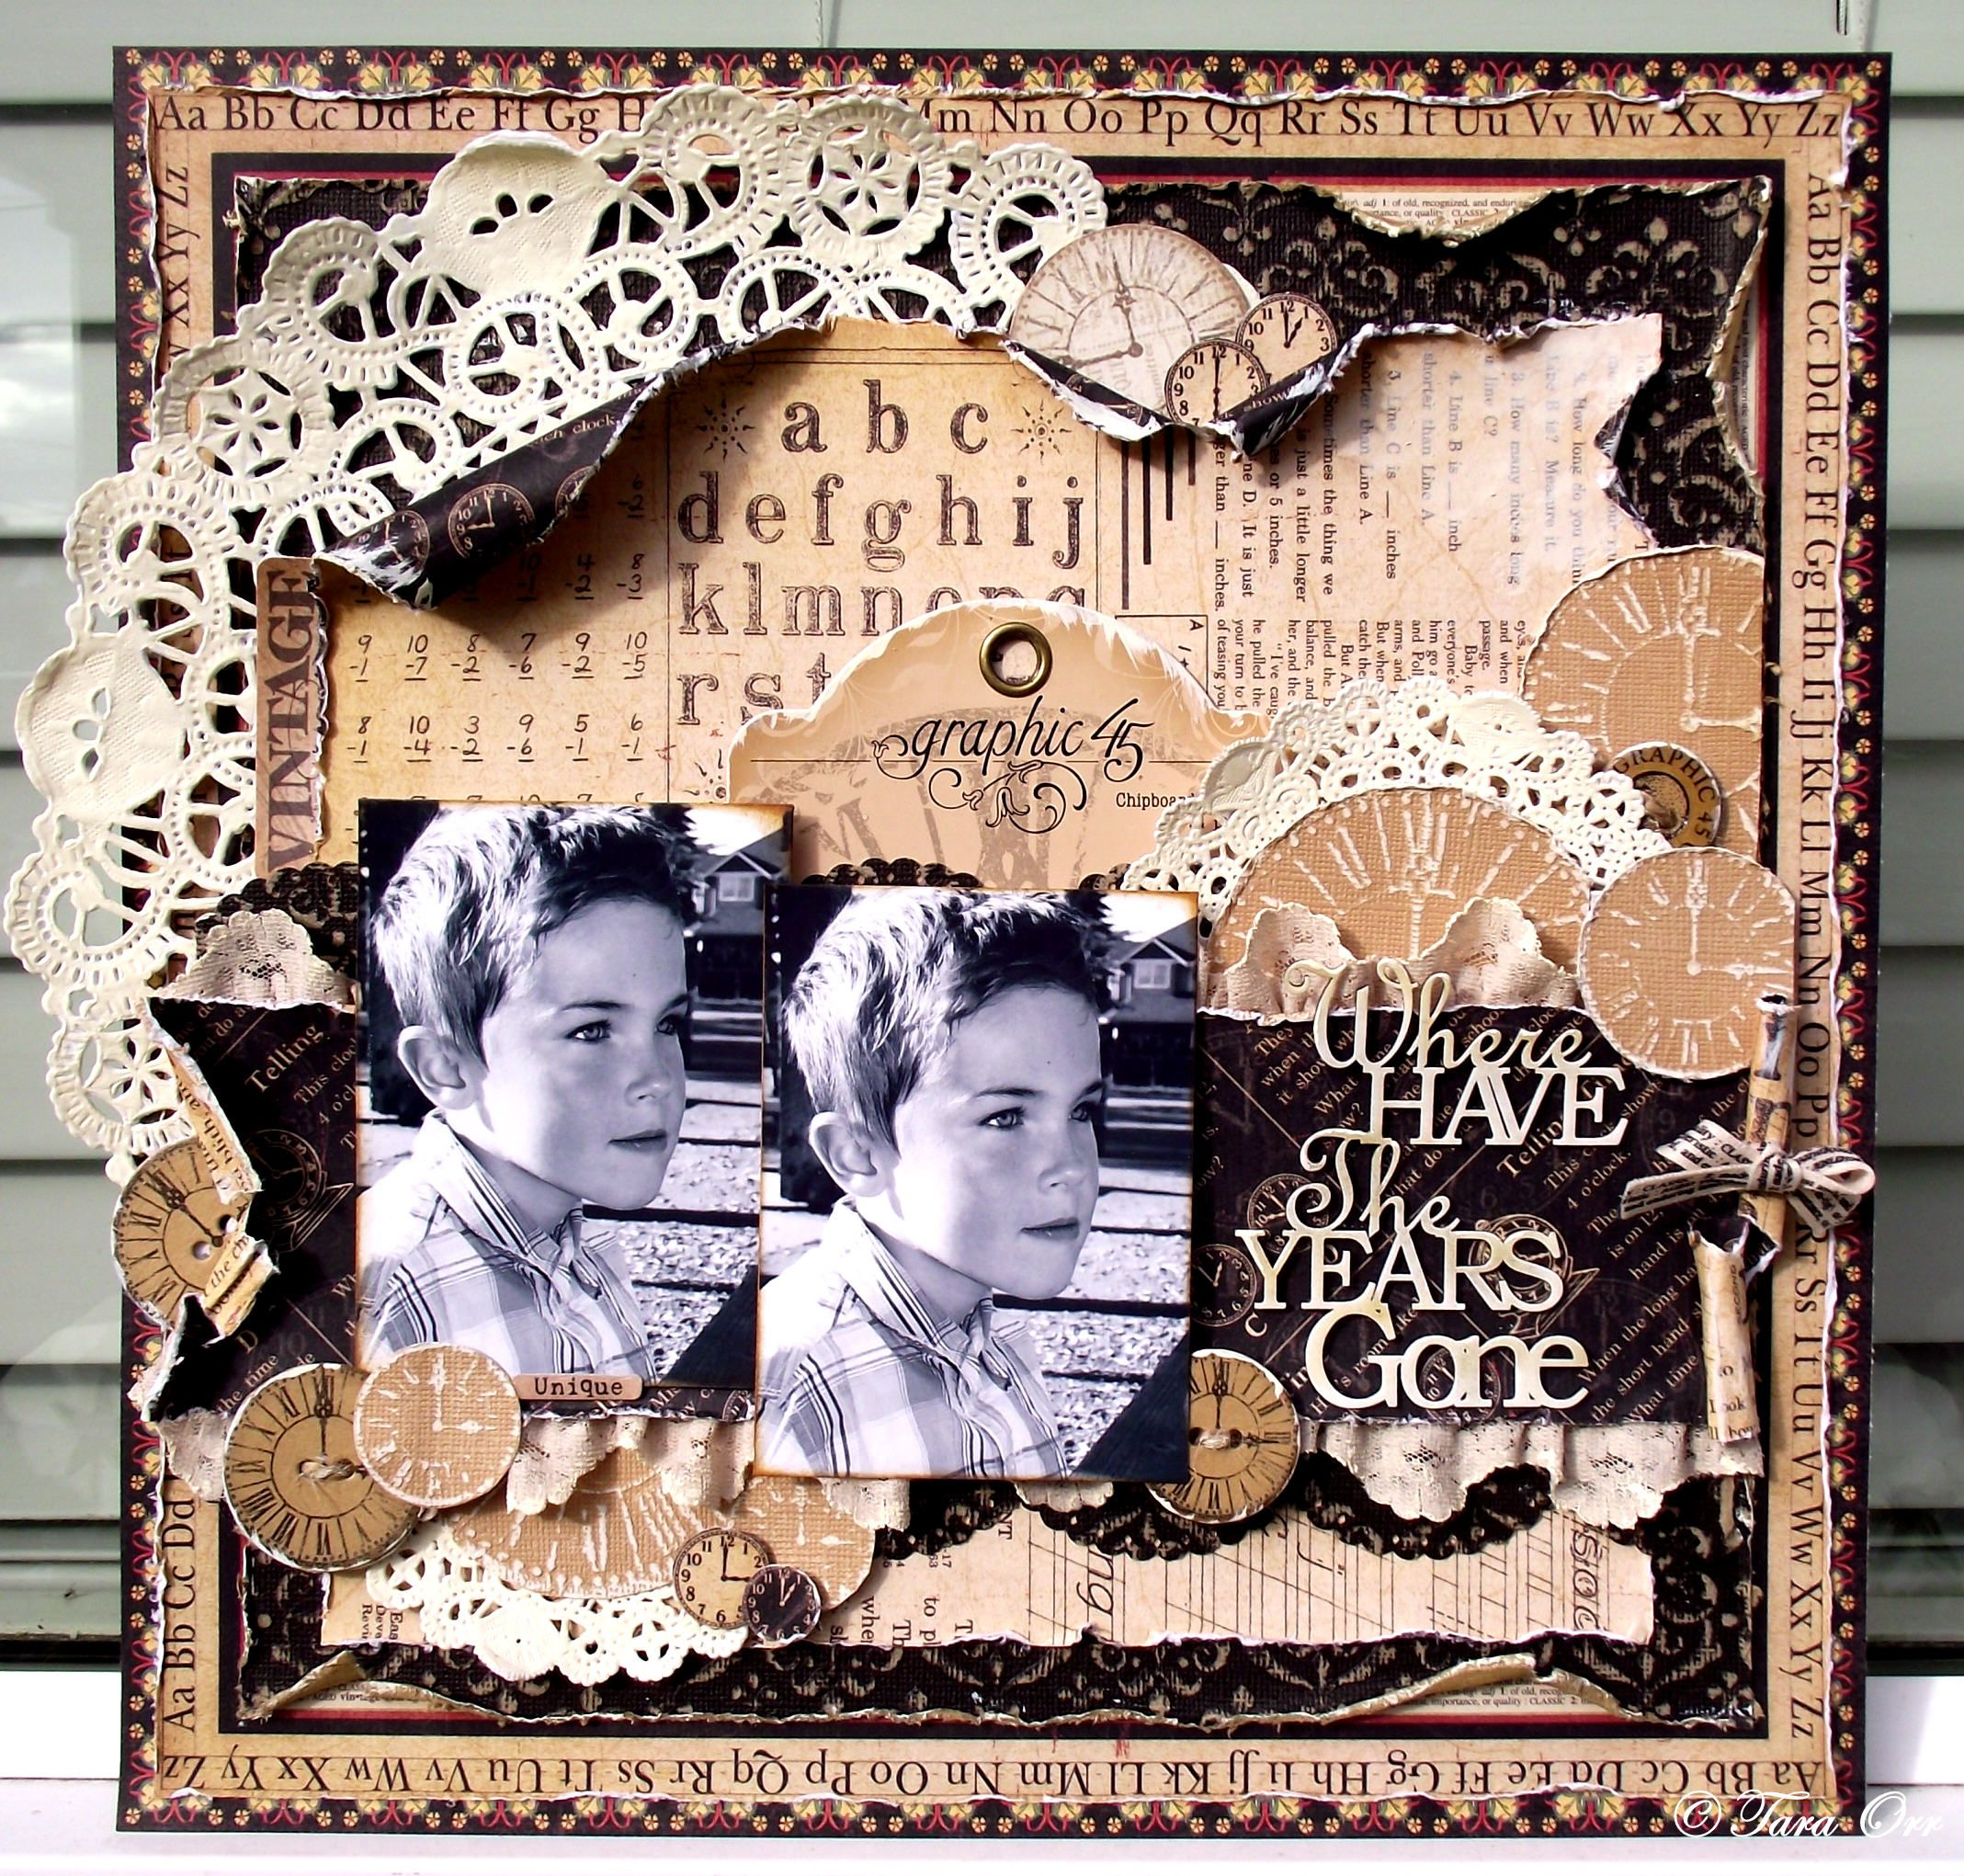 Where Have the Years Gone - Design Team work for Graphic 45 using their amazing An ABC Primer collection.  We hare having a blog hop with Core'dinations right now so come on over to my blog for some more detailed shots and your chance to win an amazing Graphic 45 & Coredinations prize!  http://eachmoment-onlyonce.blogspot.com